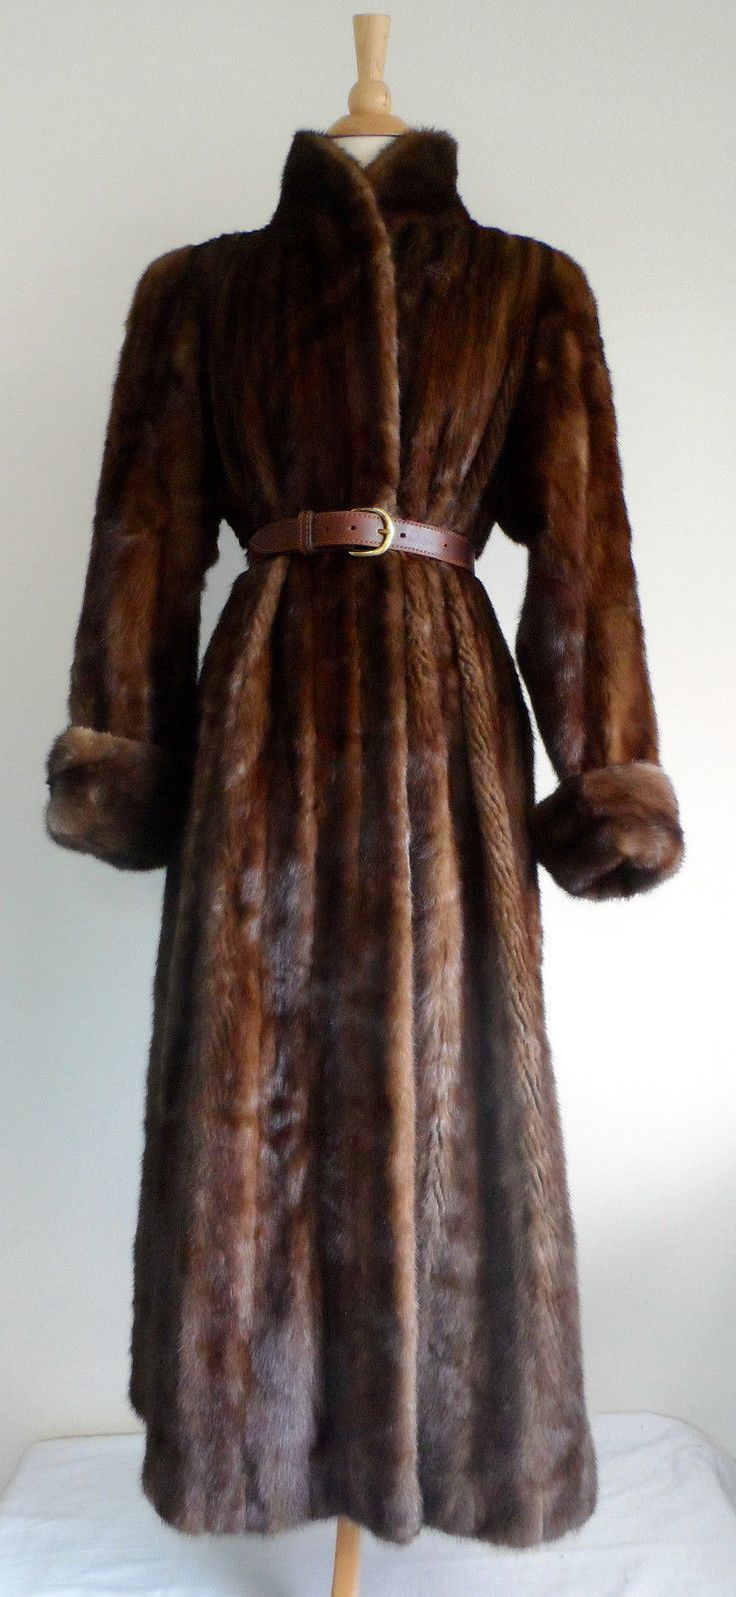 Vintage 50s Dark Brown Mink Fur Genuine Natural Long Swing Coat Jacket Lined s M | eBay